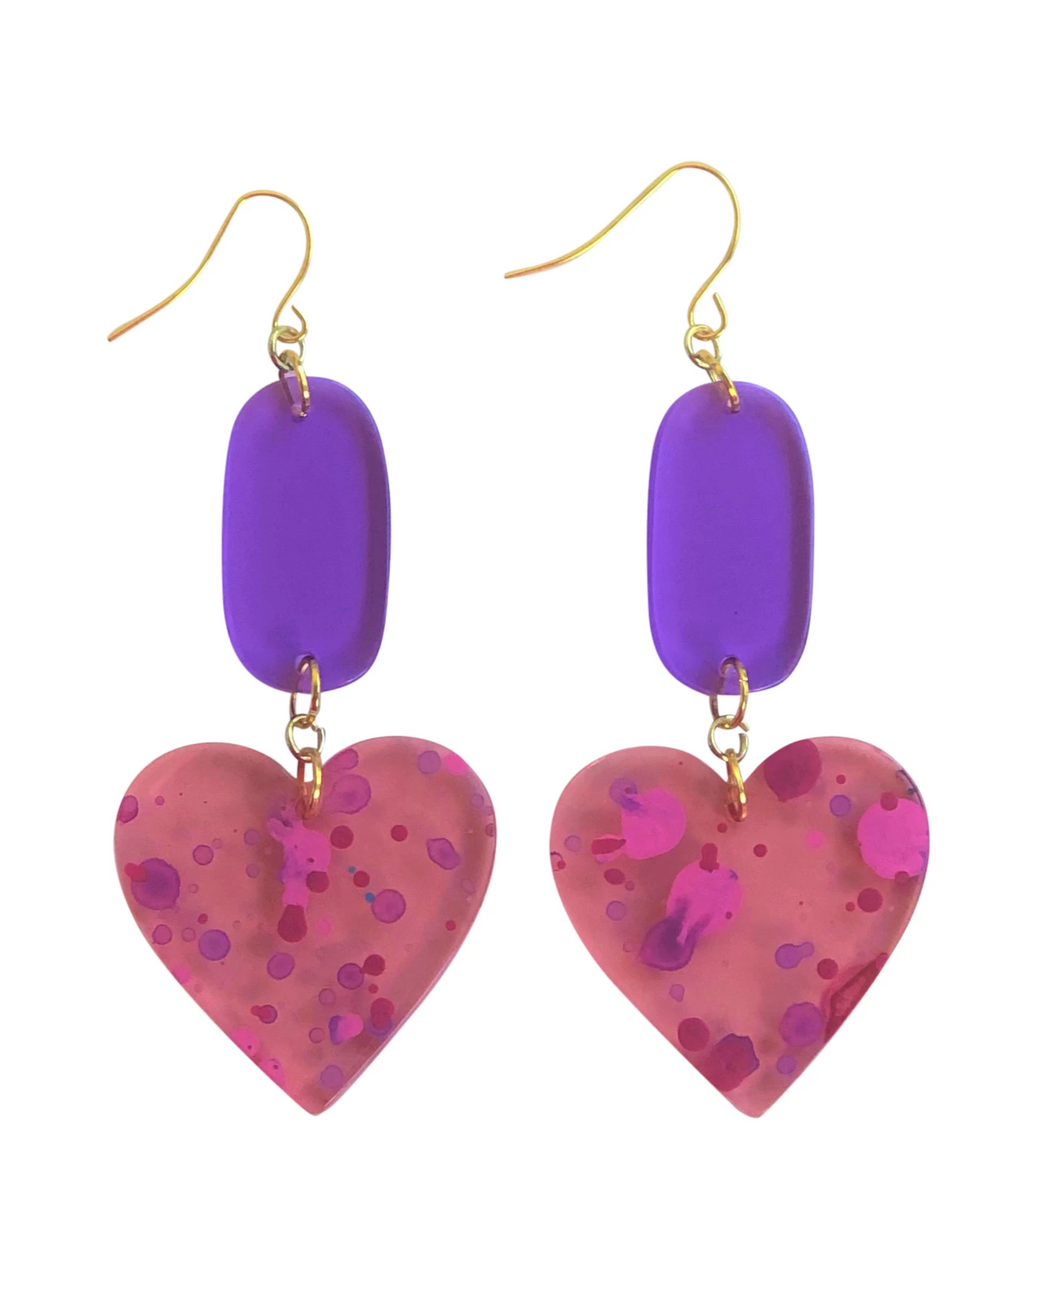 These 80's inspired Total Eclipse Heart Splatter Paint pink, purple, acrylic statement earrings are fun and will make you feel happy and cheerful, while adding the perfect pop of color to your wardrobe! Our colorful, eighties inspired earrings are handmade and designed with love in Las Vegas and like totally, make a statement!